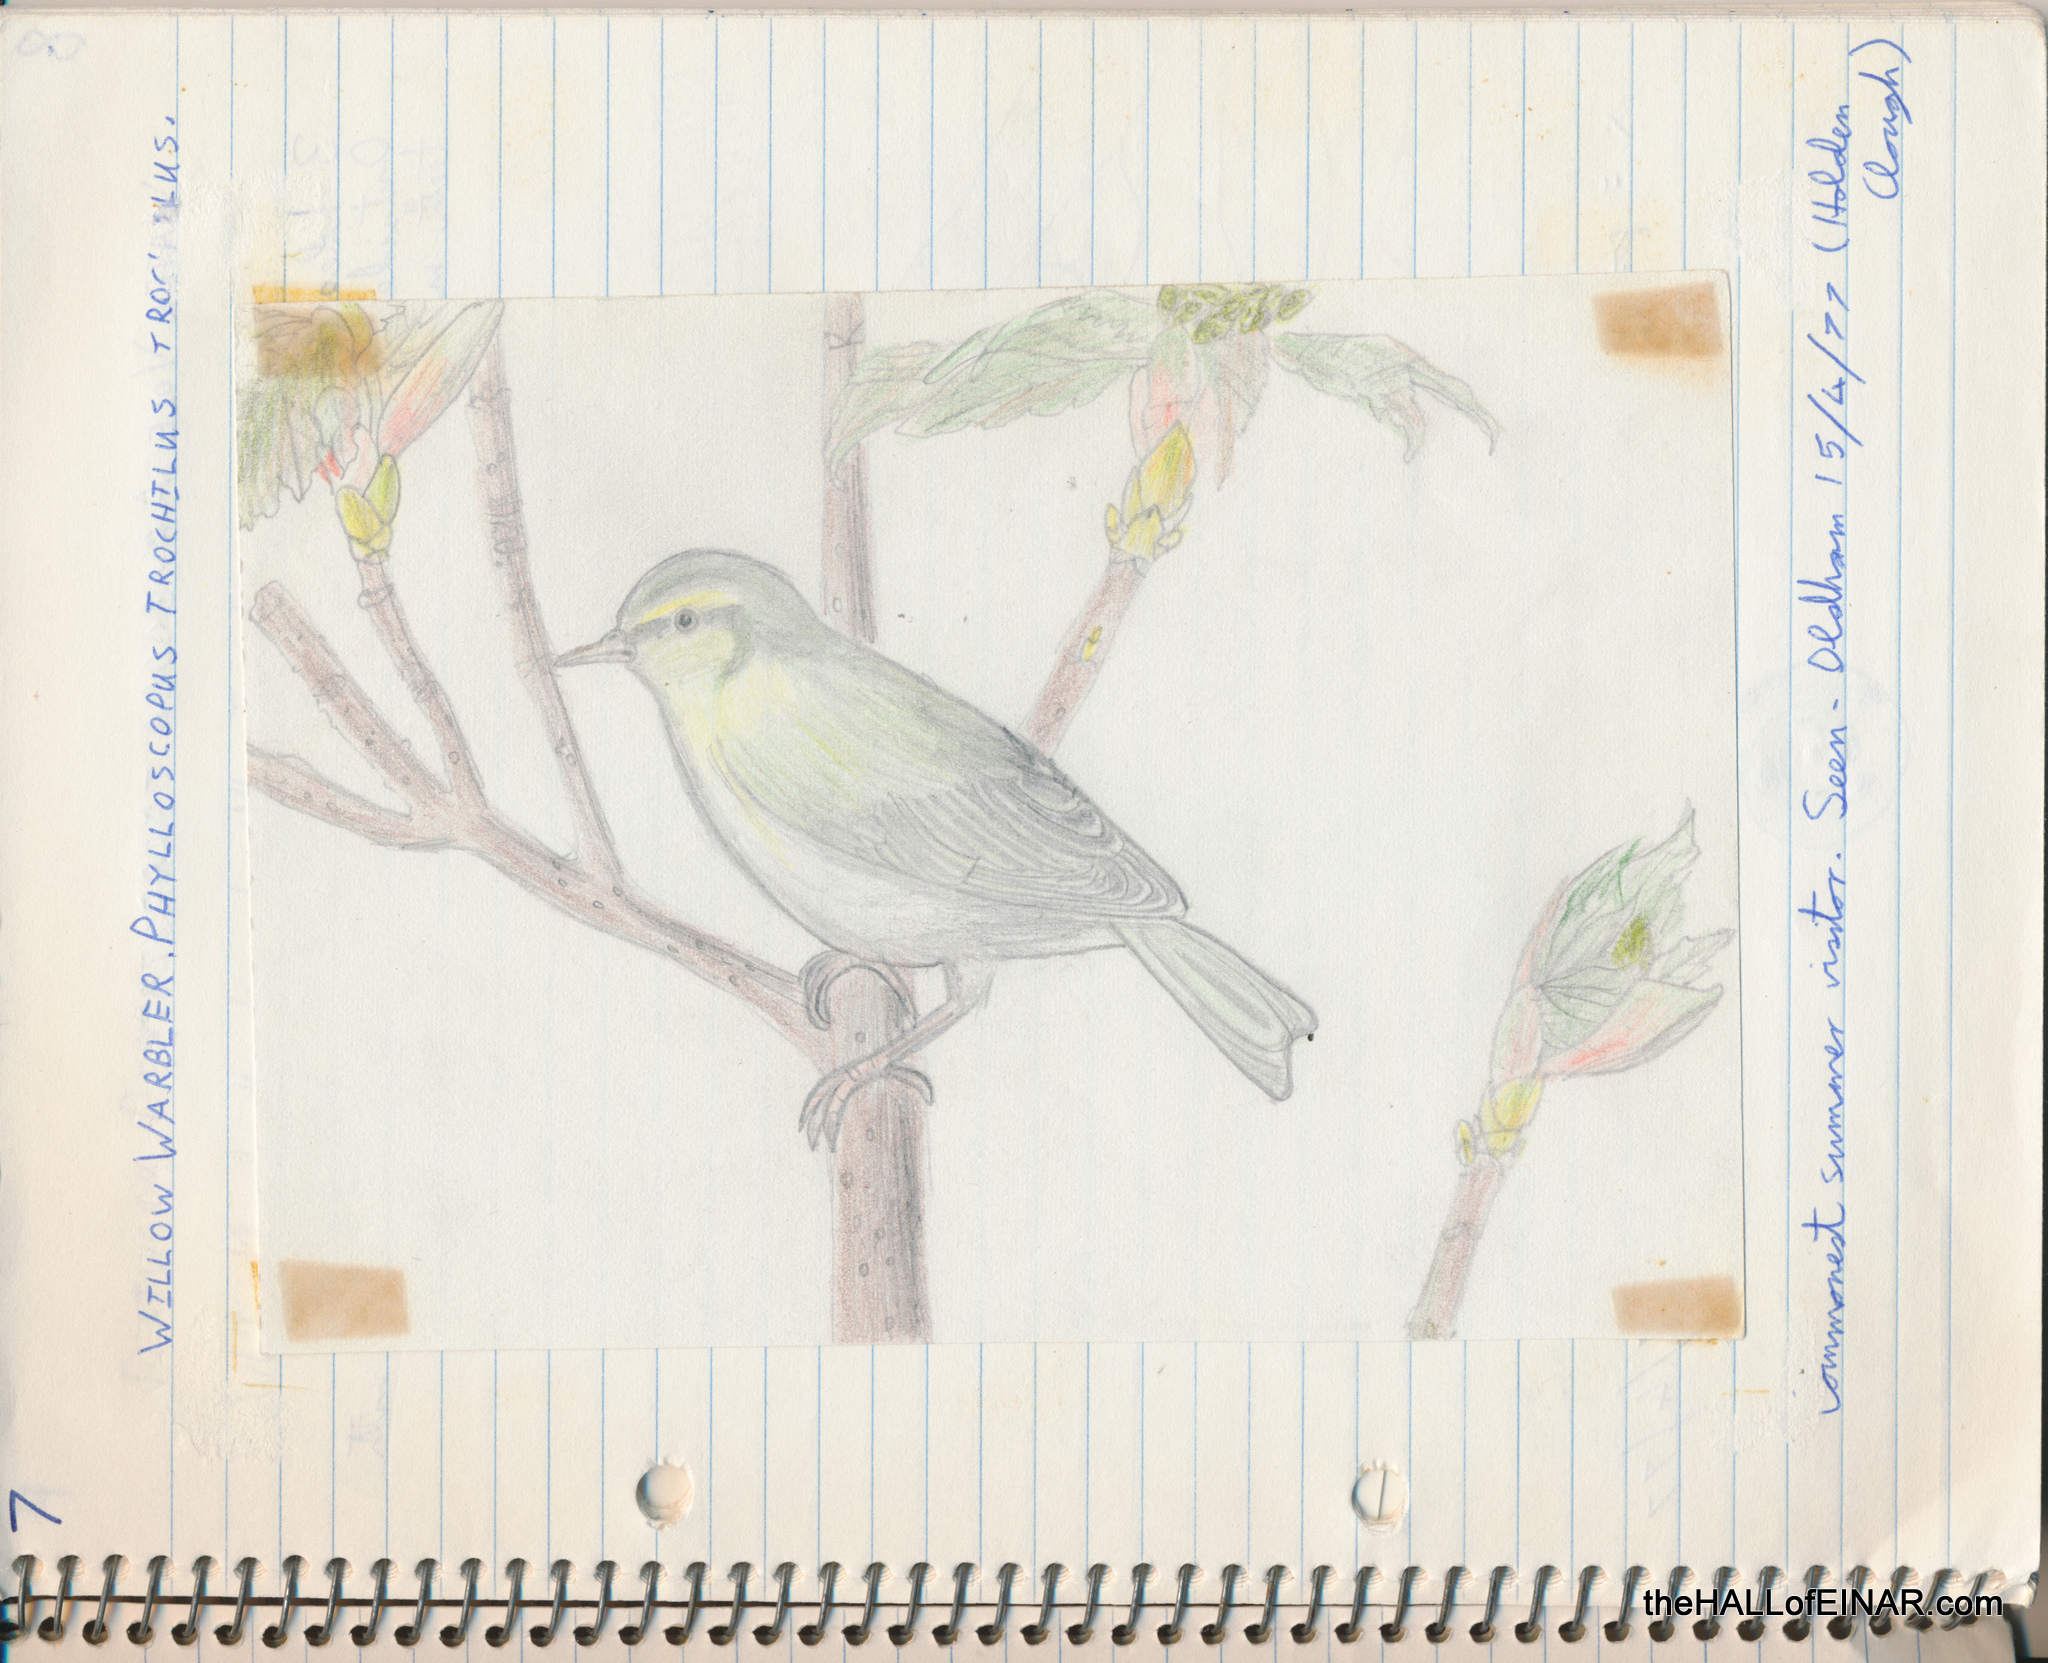 Willow Warbler - The Hall of Einar - (c) David Bailey (not the)